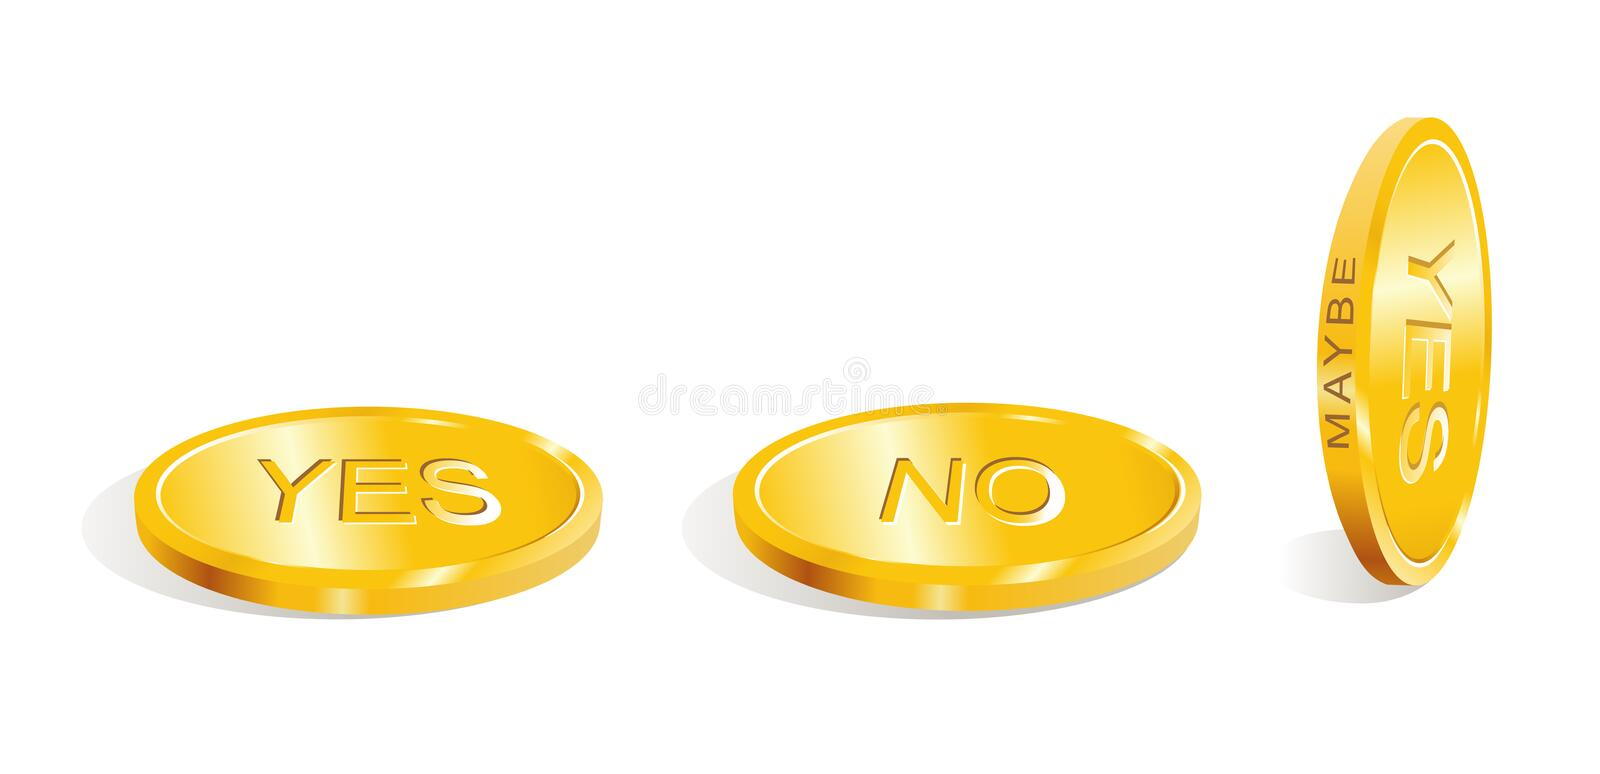 Download Yes - No - Maybe / Accept The Decision / Vector Stock Vector - Image: 4273901